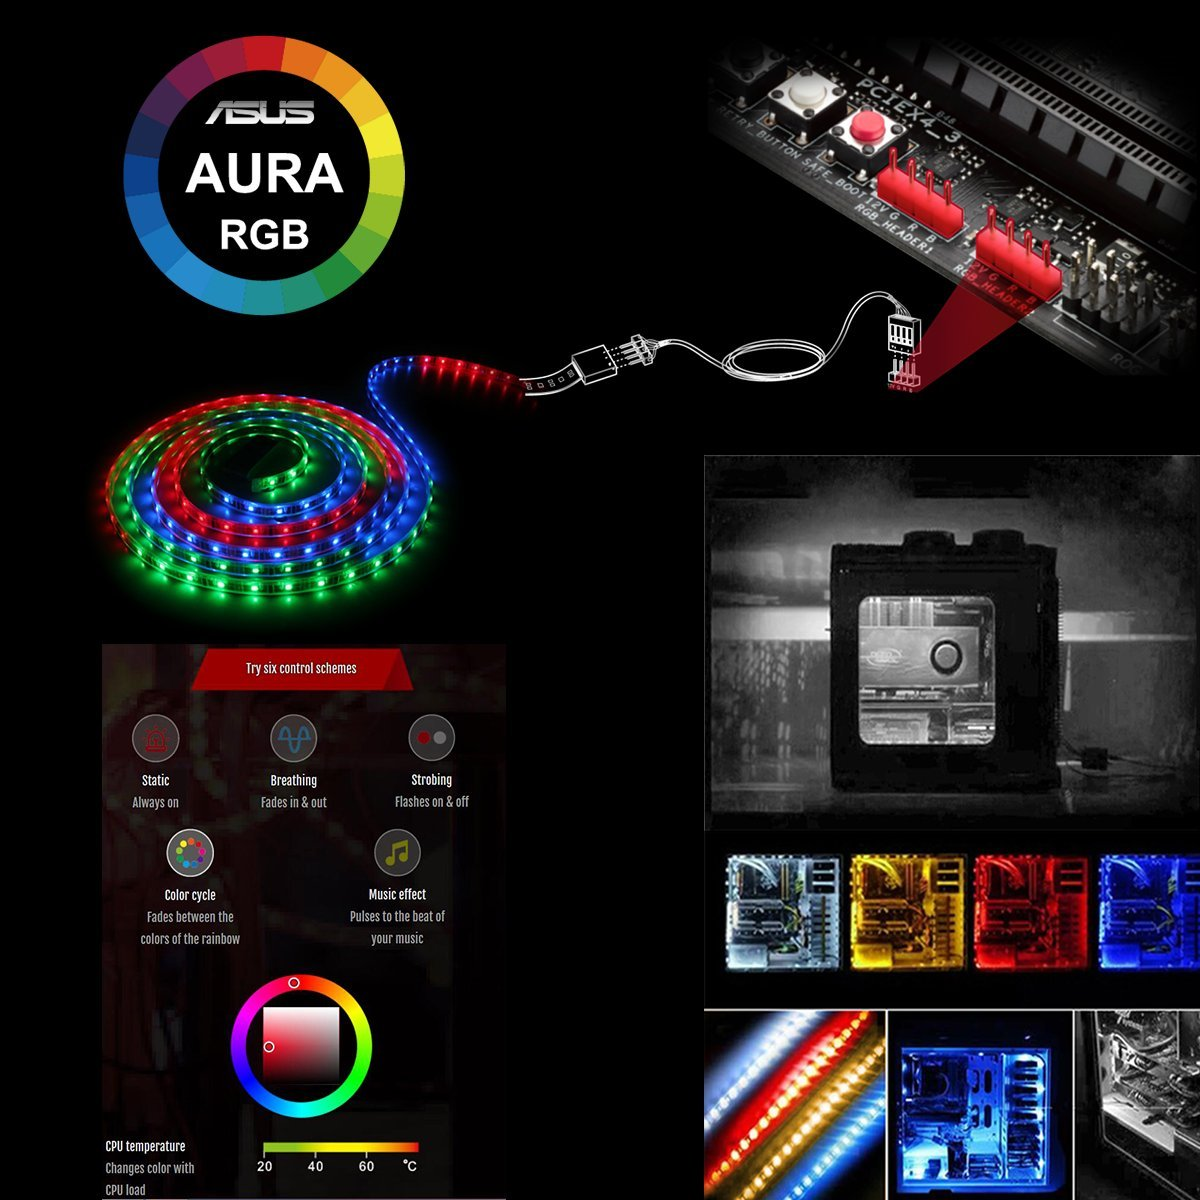 Extended Computer LED Strip Kit - 3M Tape Make It Easy to